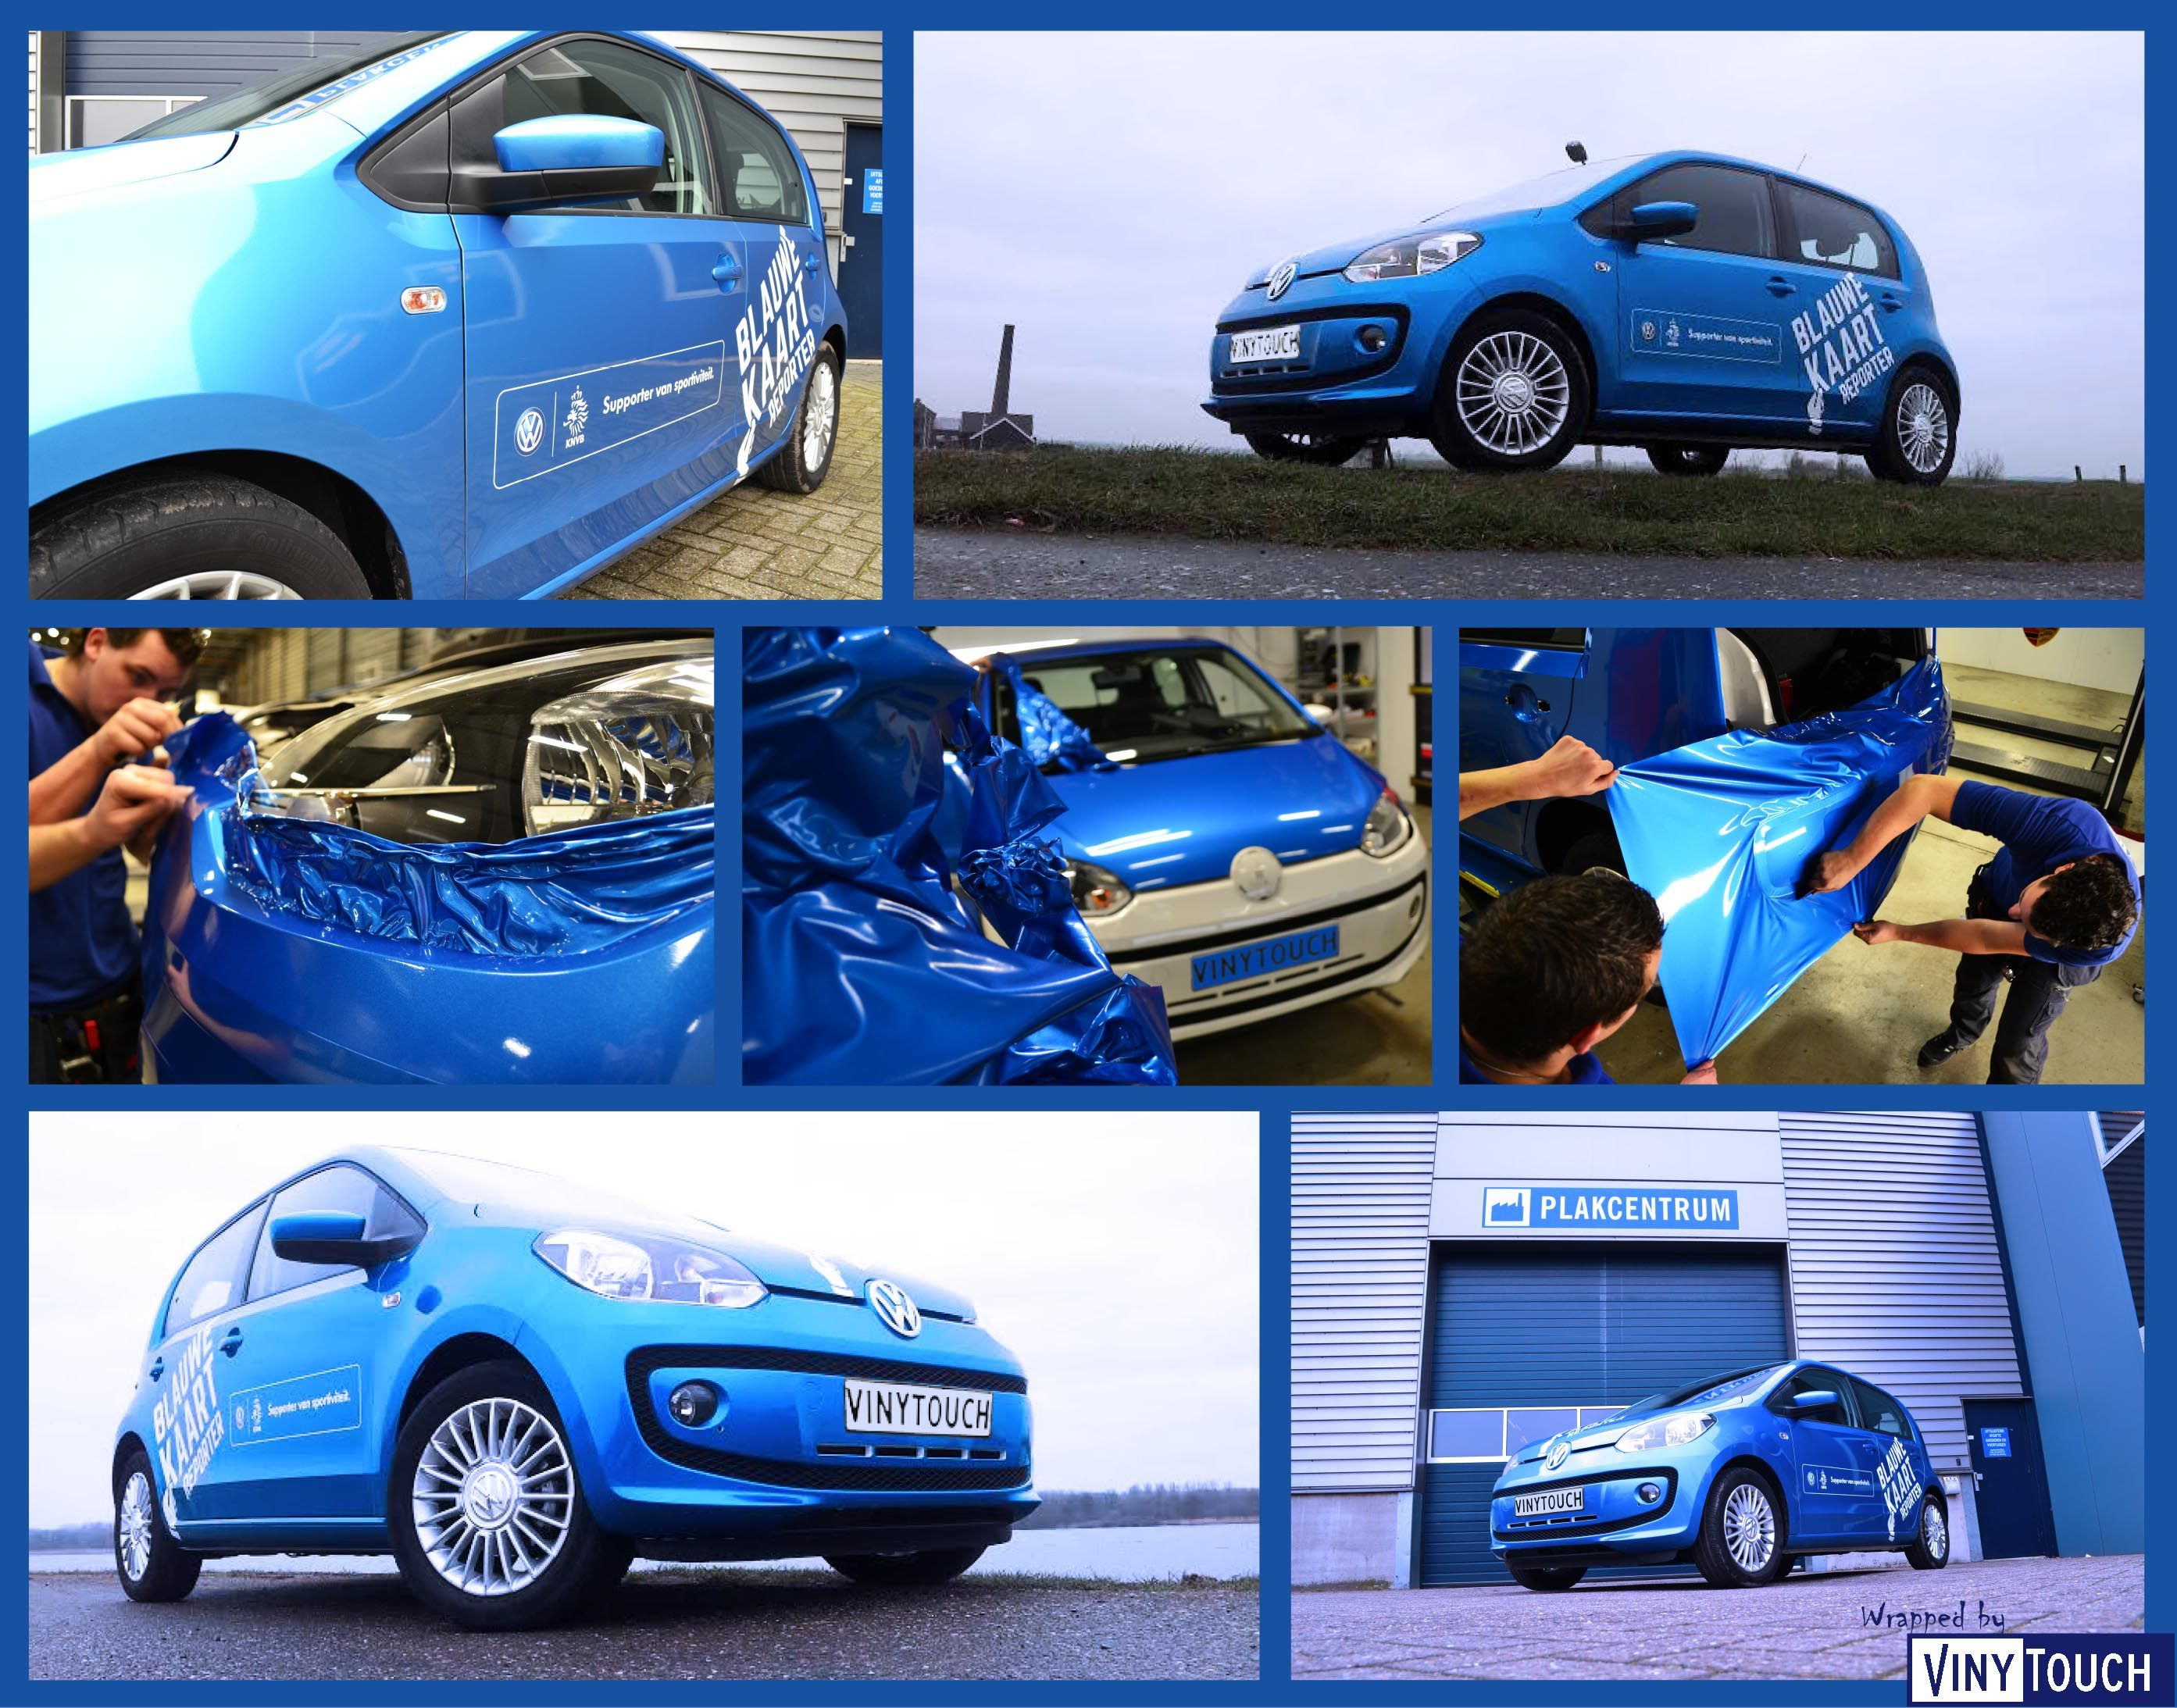 Colour car metallic - Car Wrapped In The Avery Bright Bleu Metallic By Vinytouch Vw Nederland Knvb Blauwe Kaart